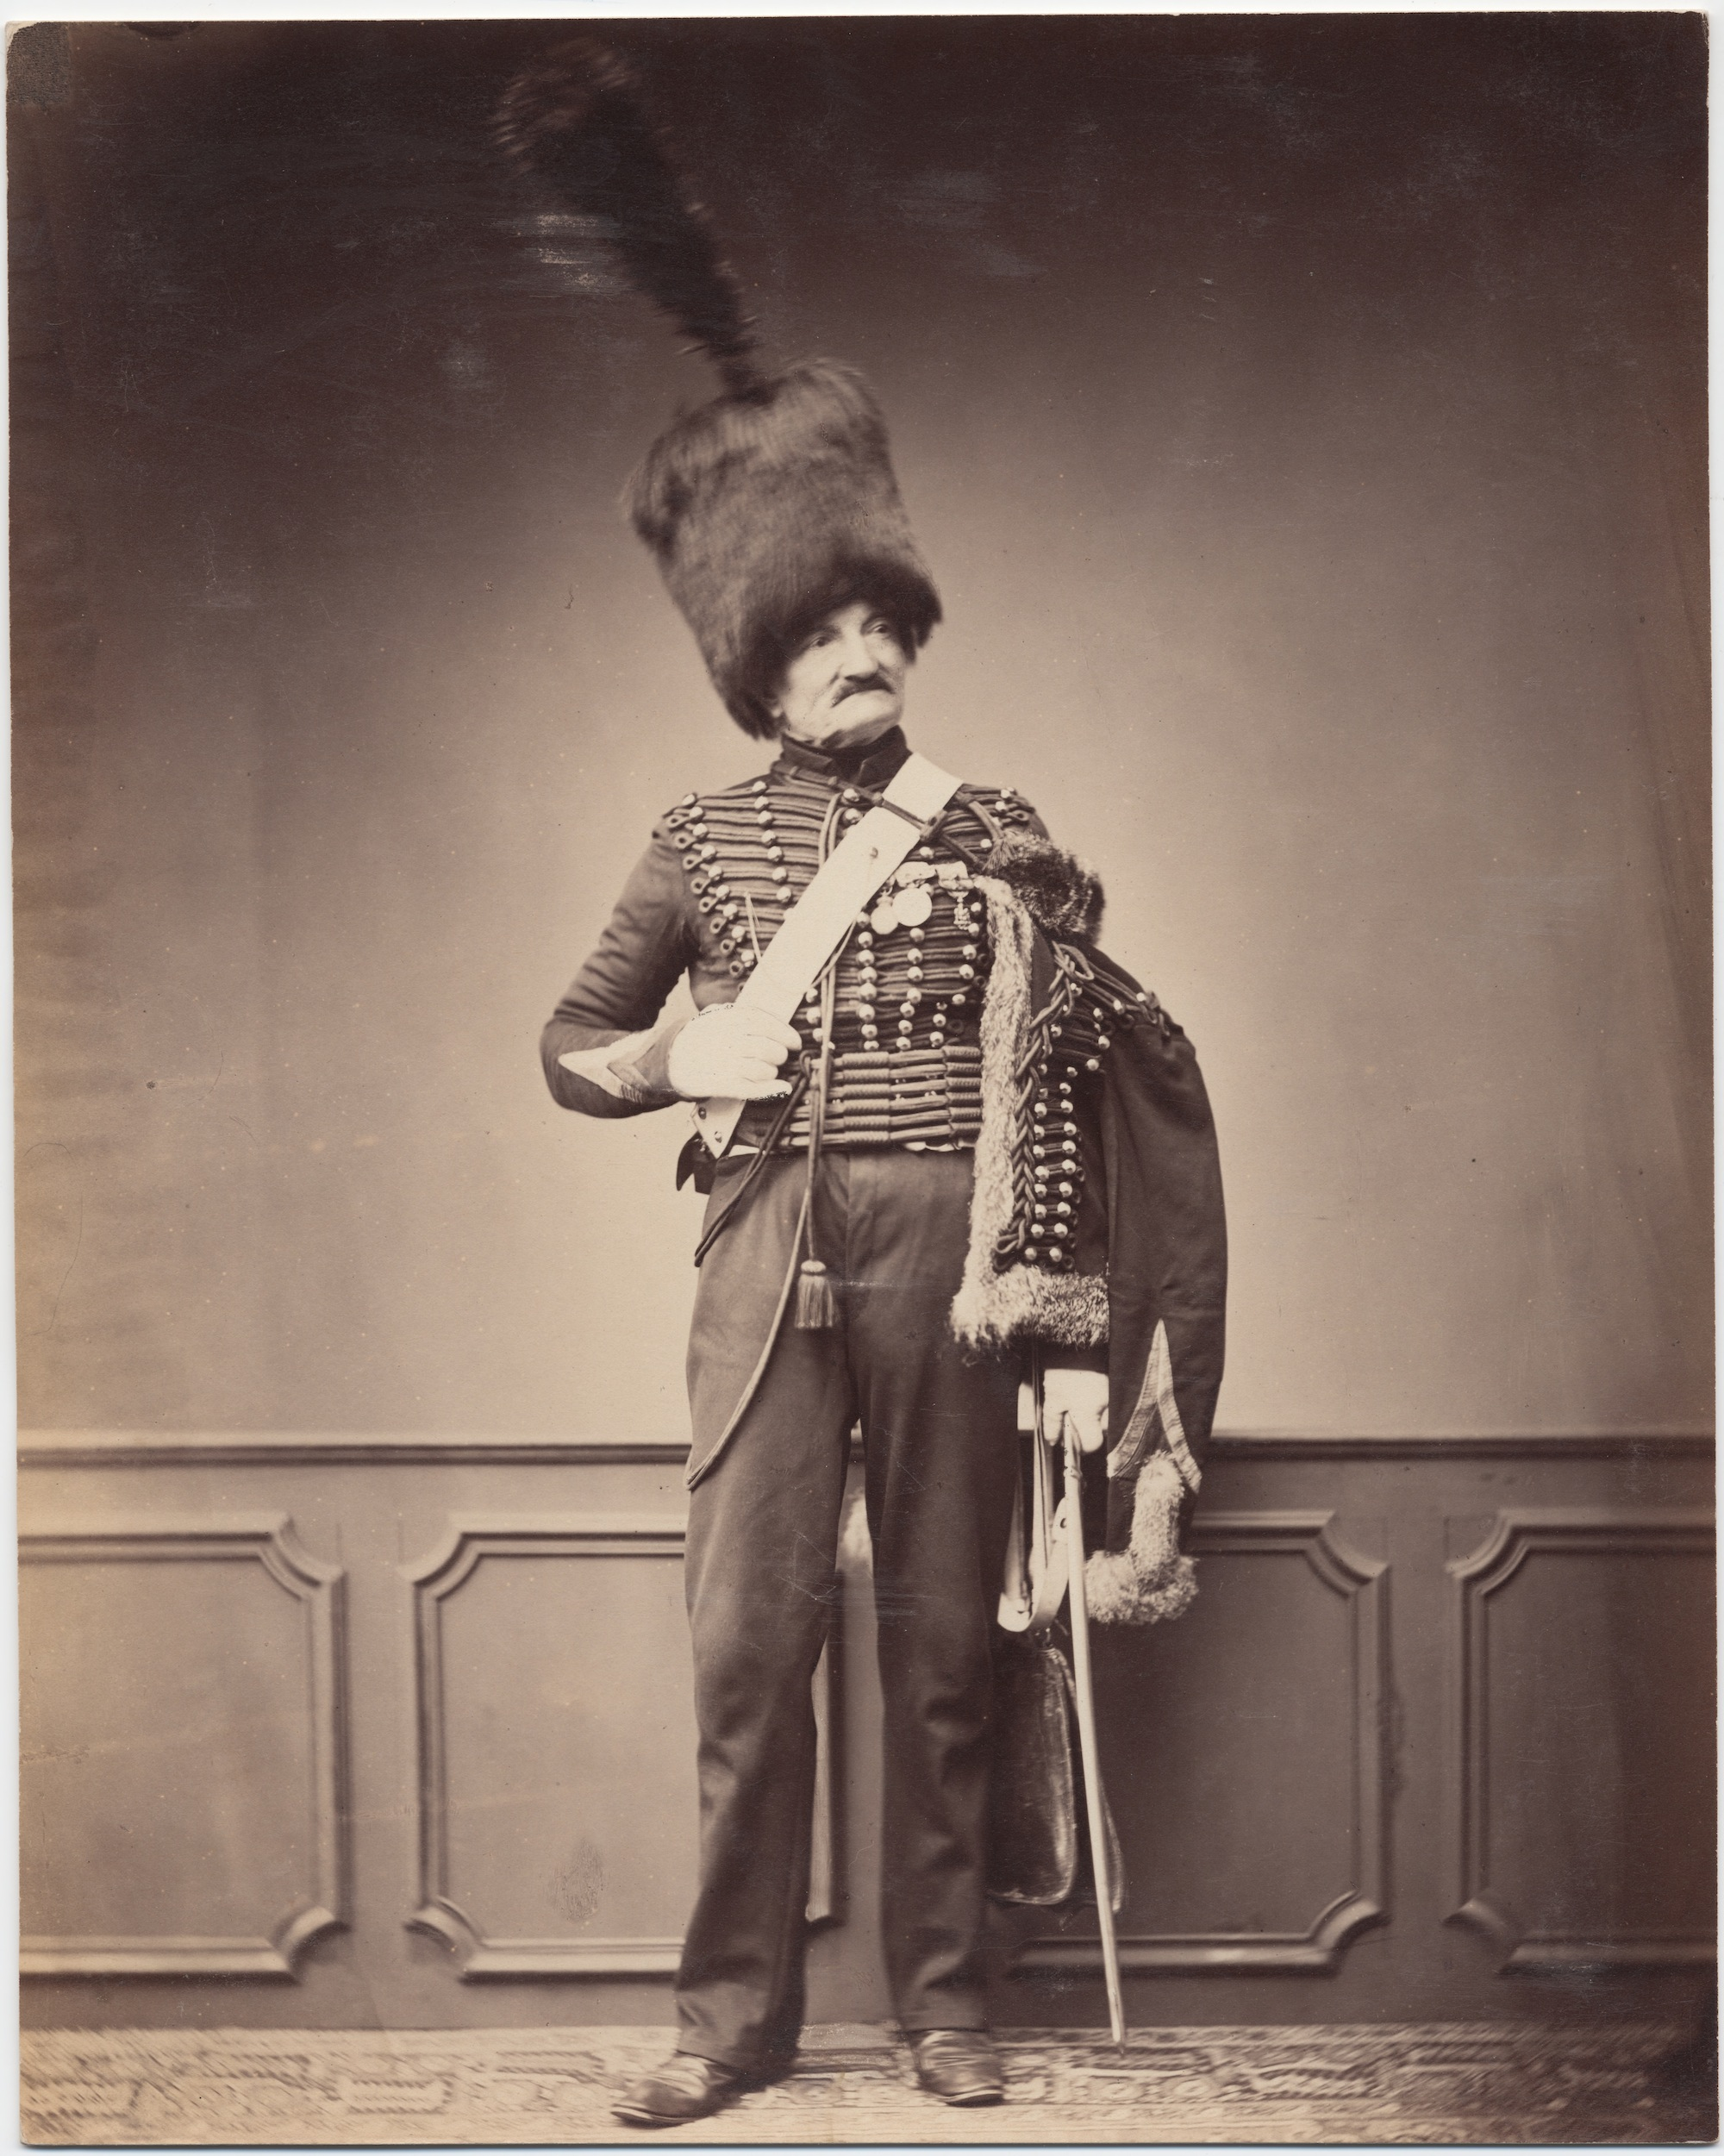 Monsieur Maire, 7th Hussars, c. 1809-15